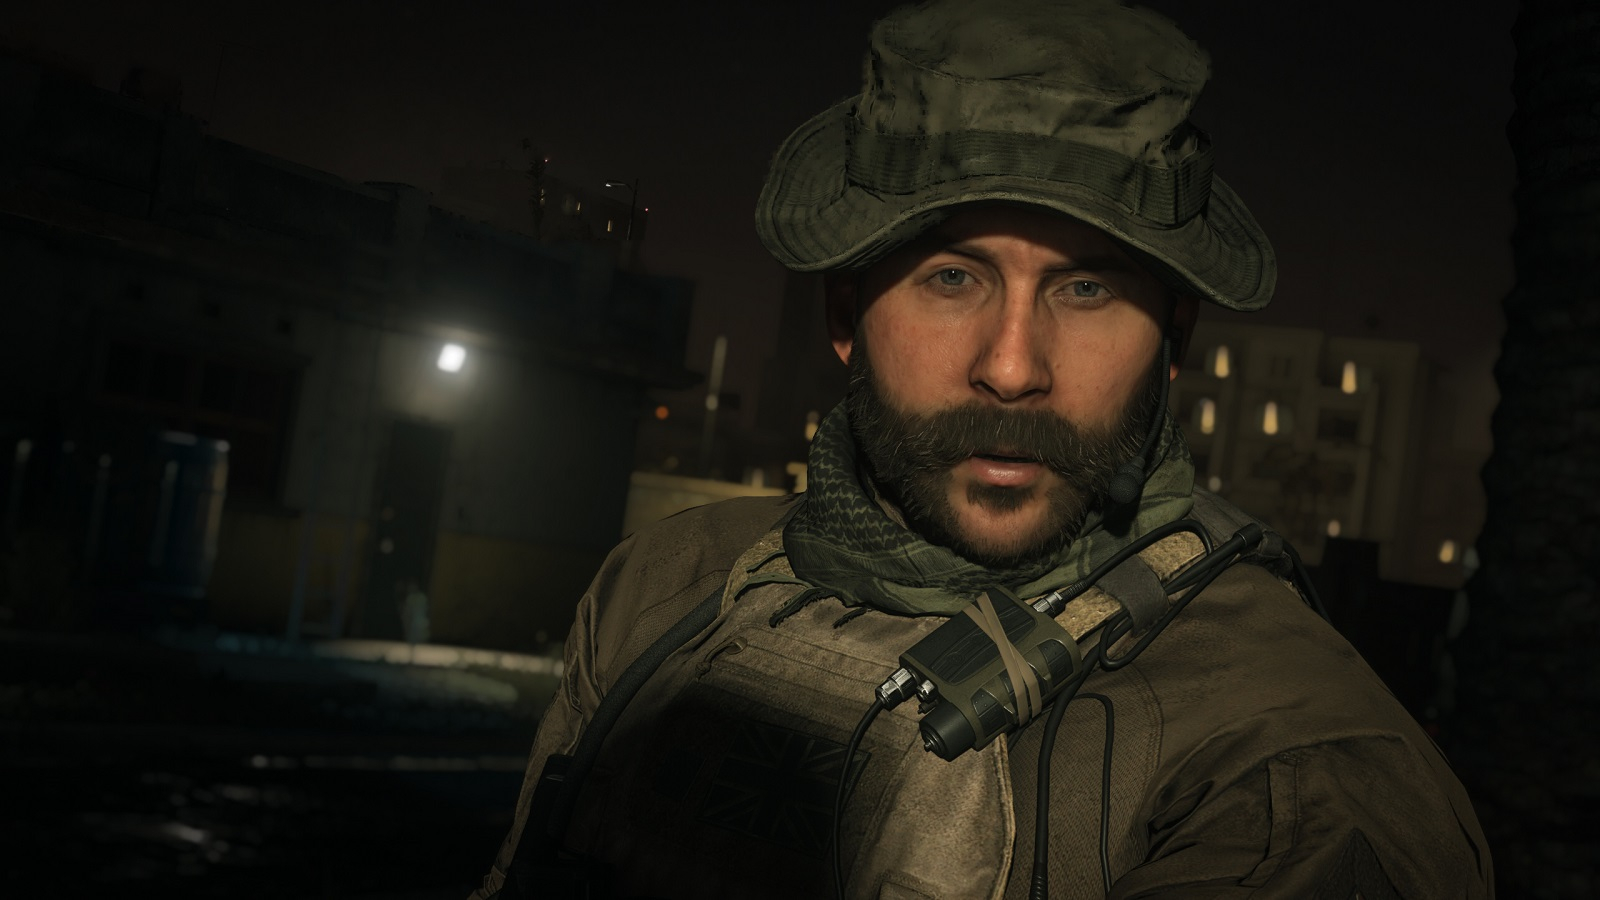 Из Call of Duty: Modern Warfare удалили безобидный жест  вероятно, из-за ассоциаций с расизмом